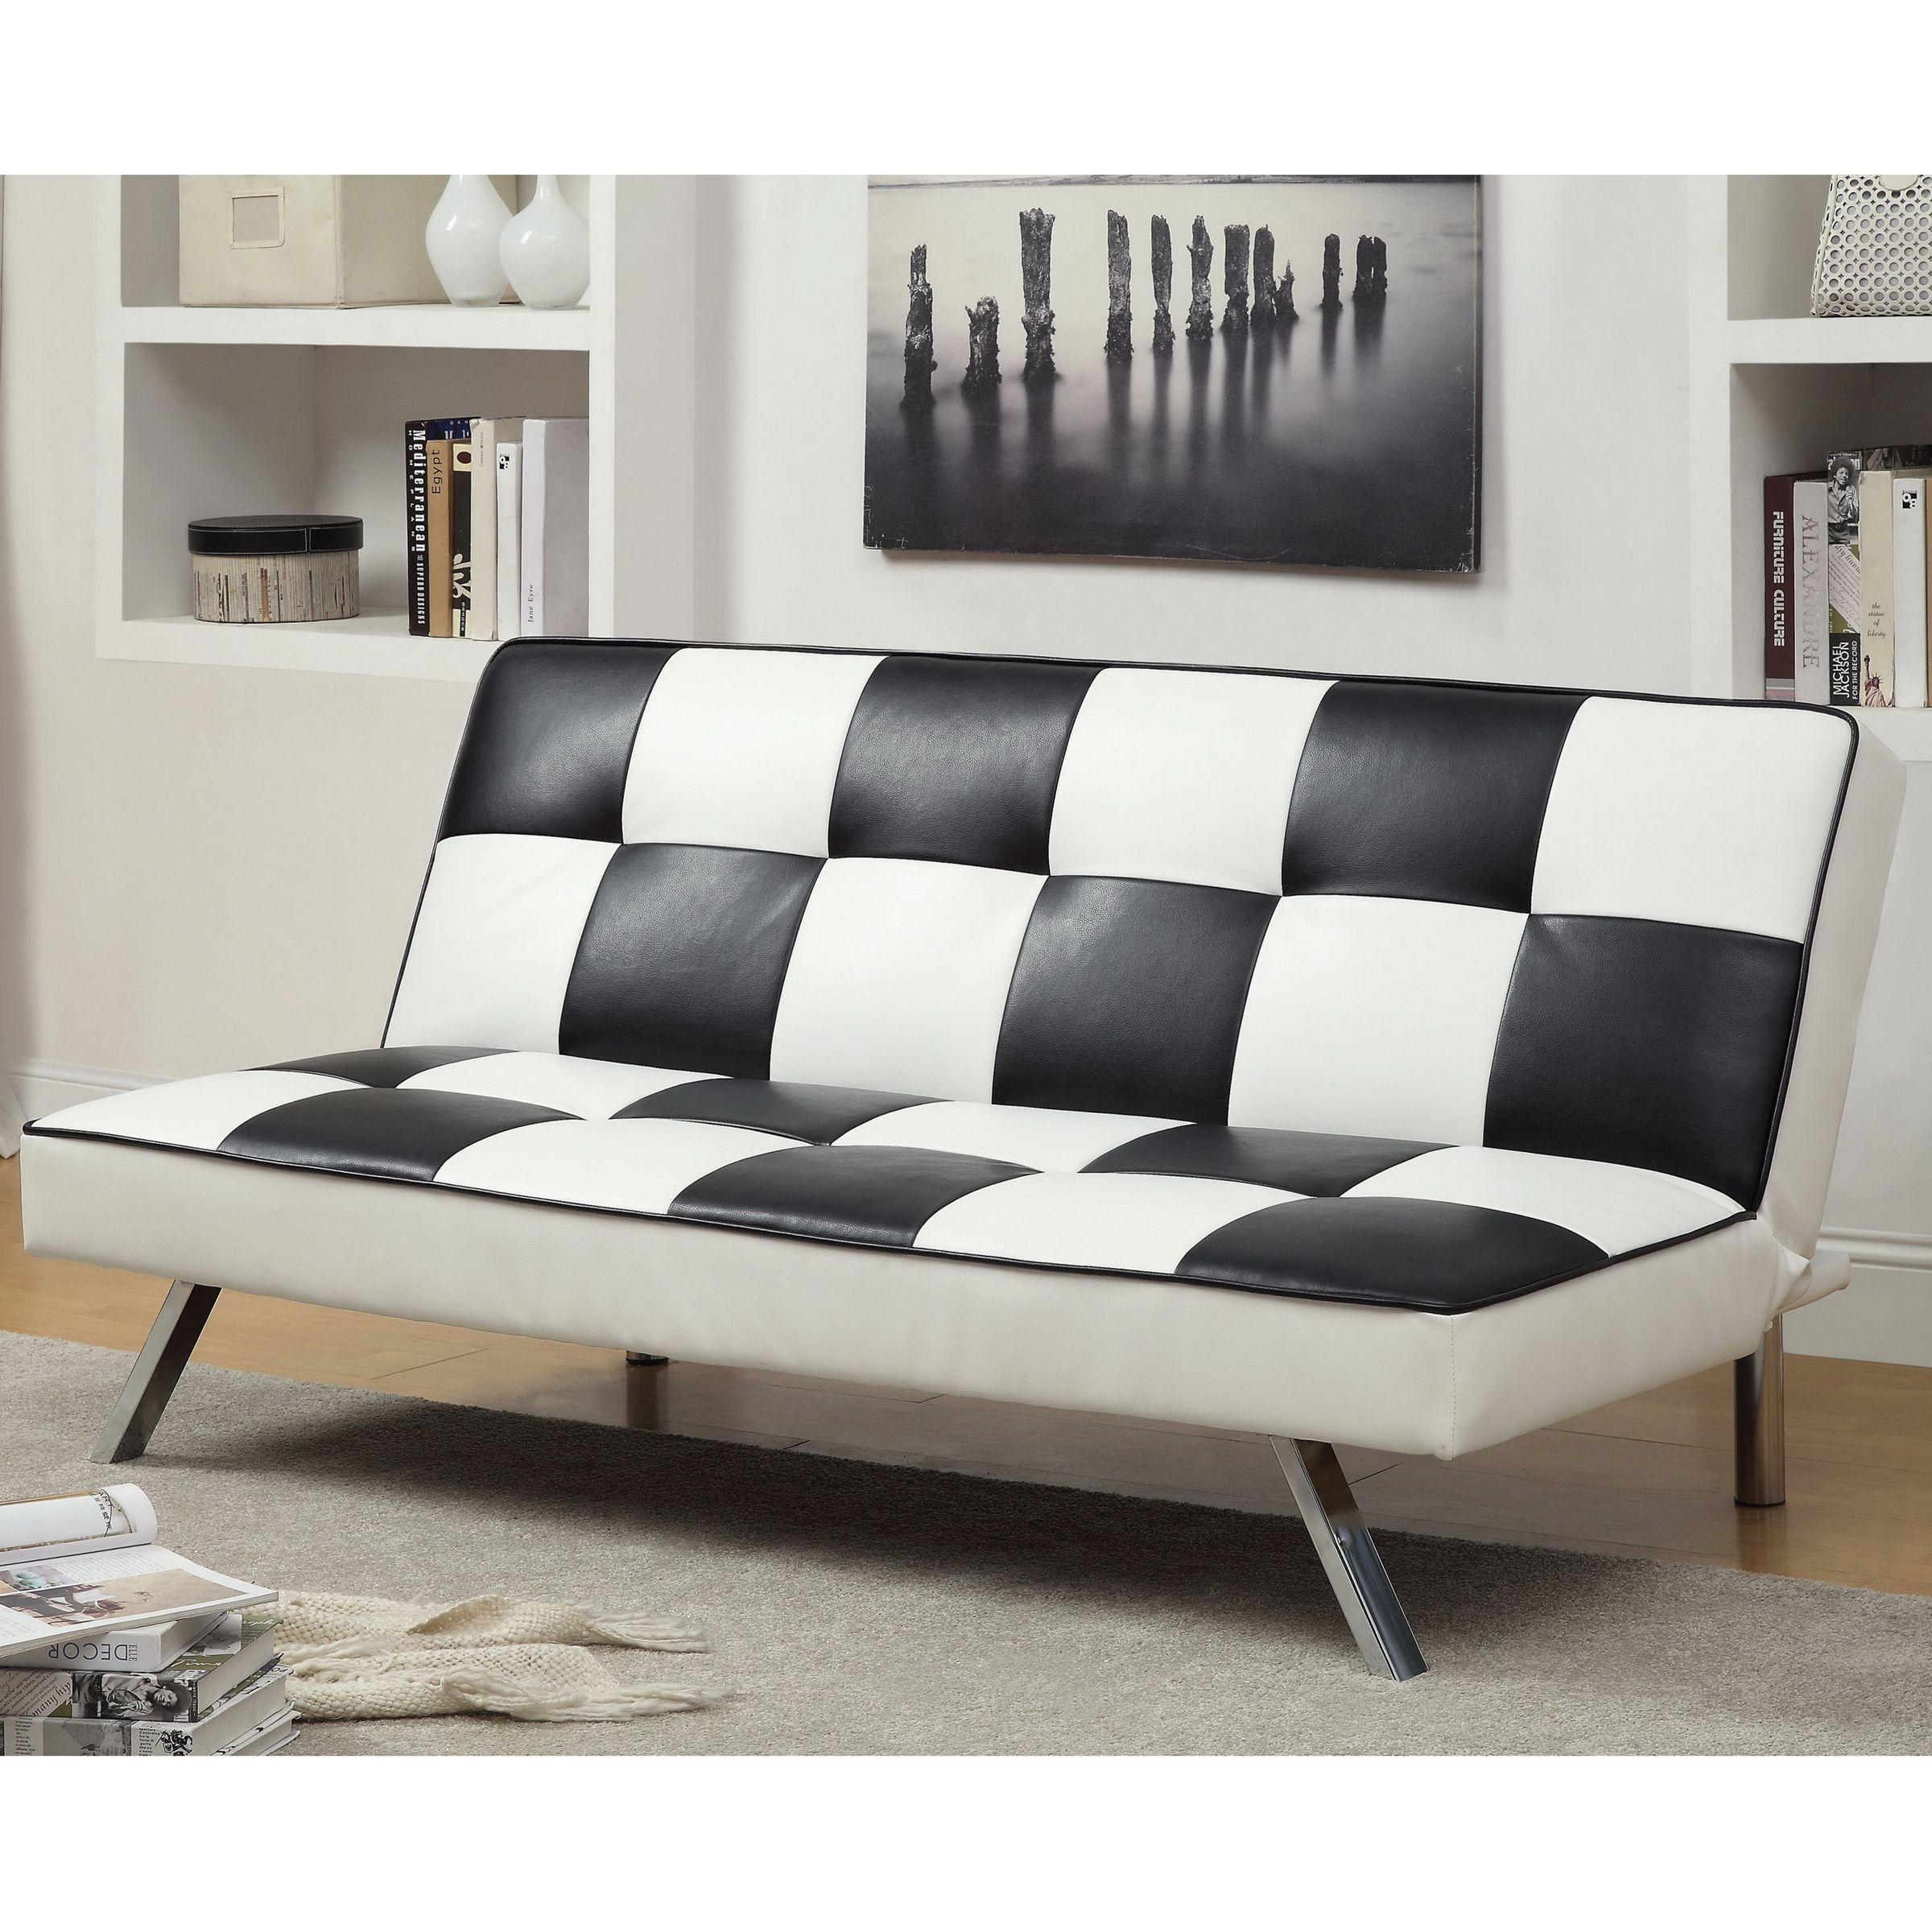 The Apis Modern Retro Futon Is A Chic Accent That Fits Right In With Your E This Highlights An Eye Catching Black And White